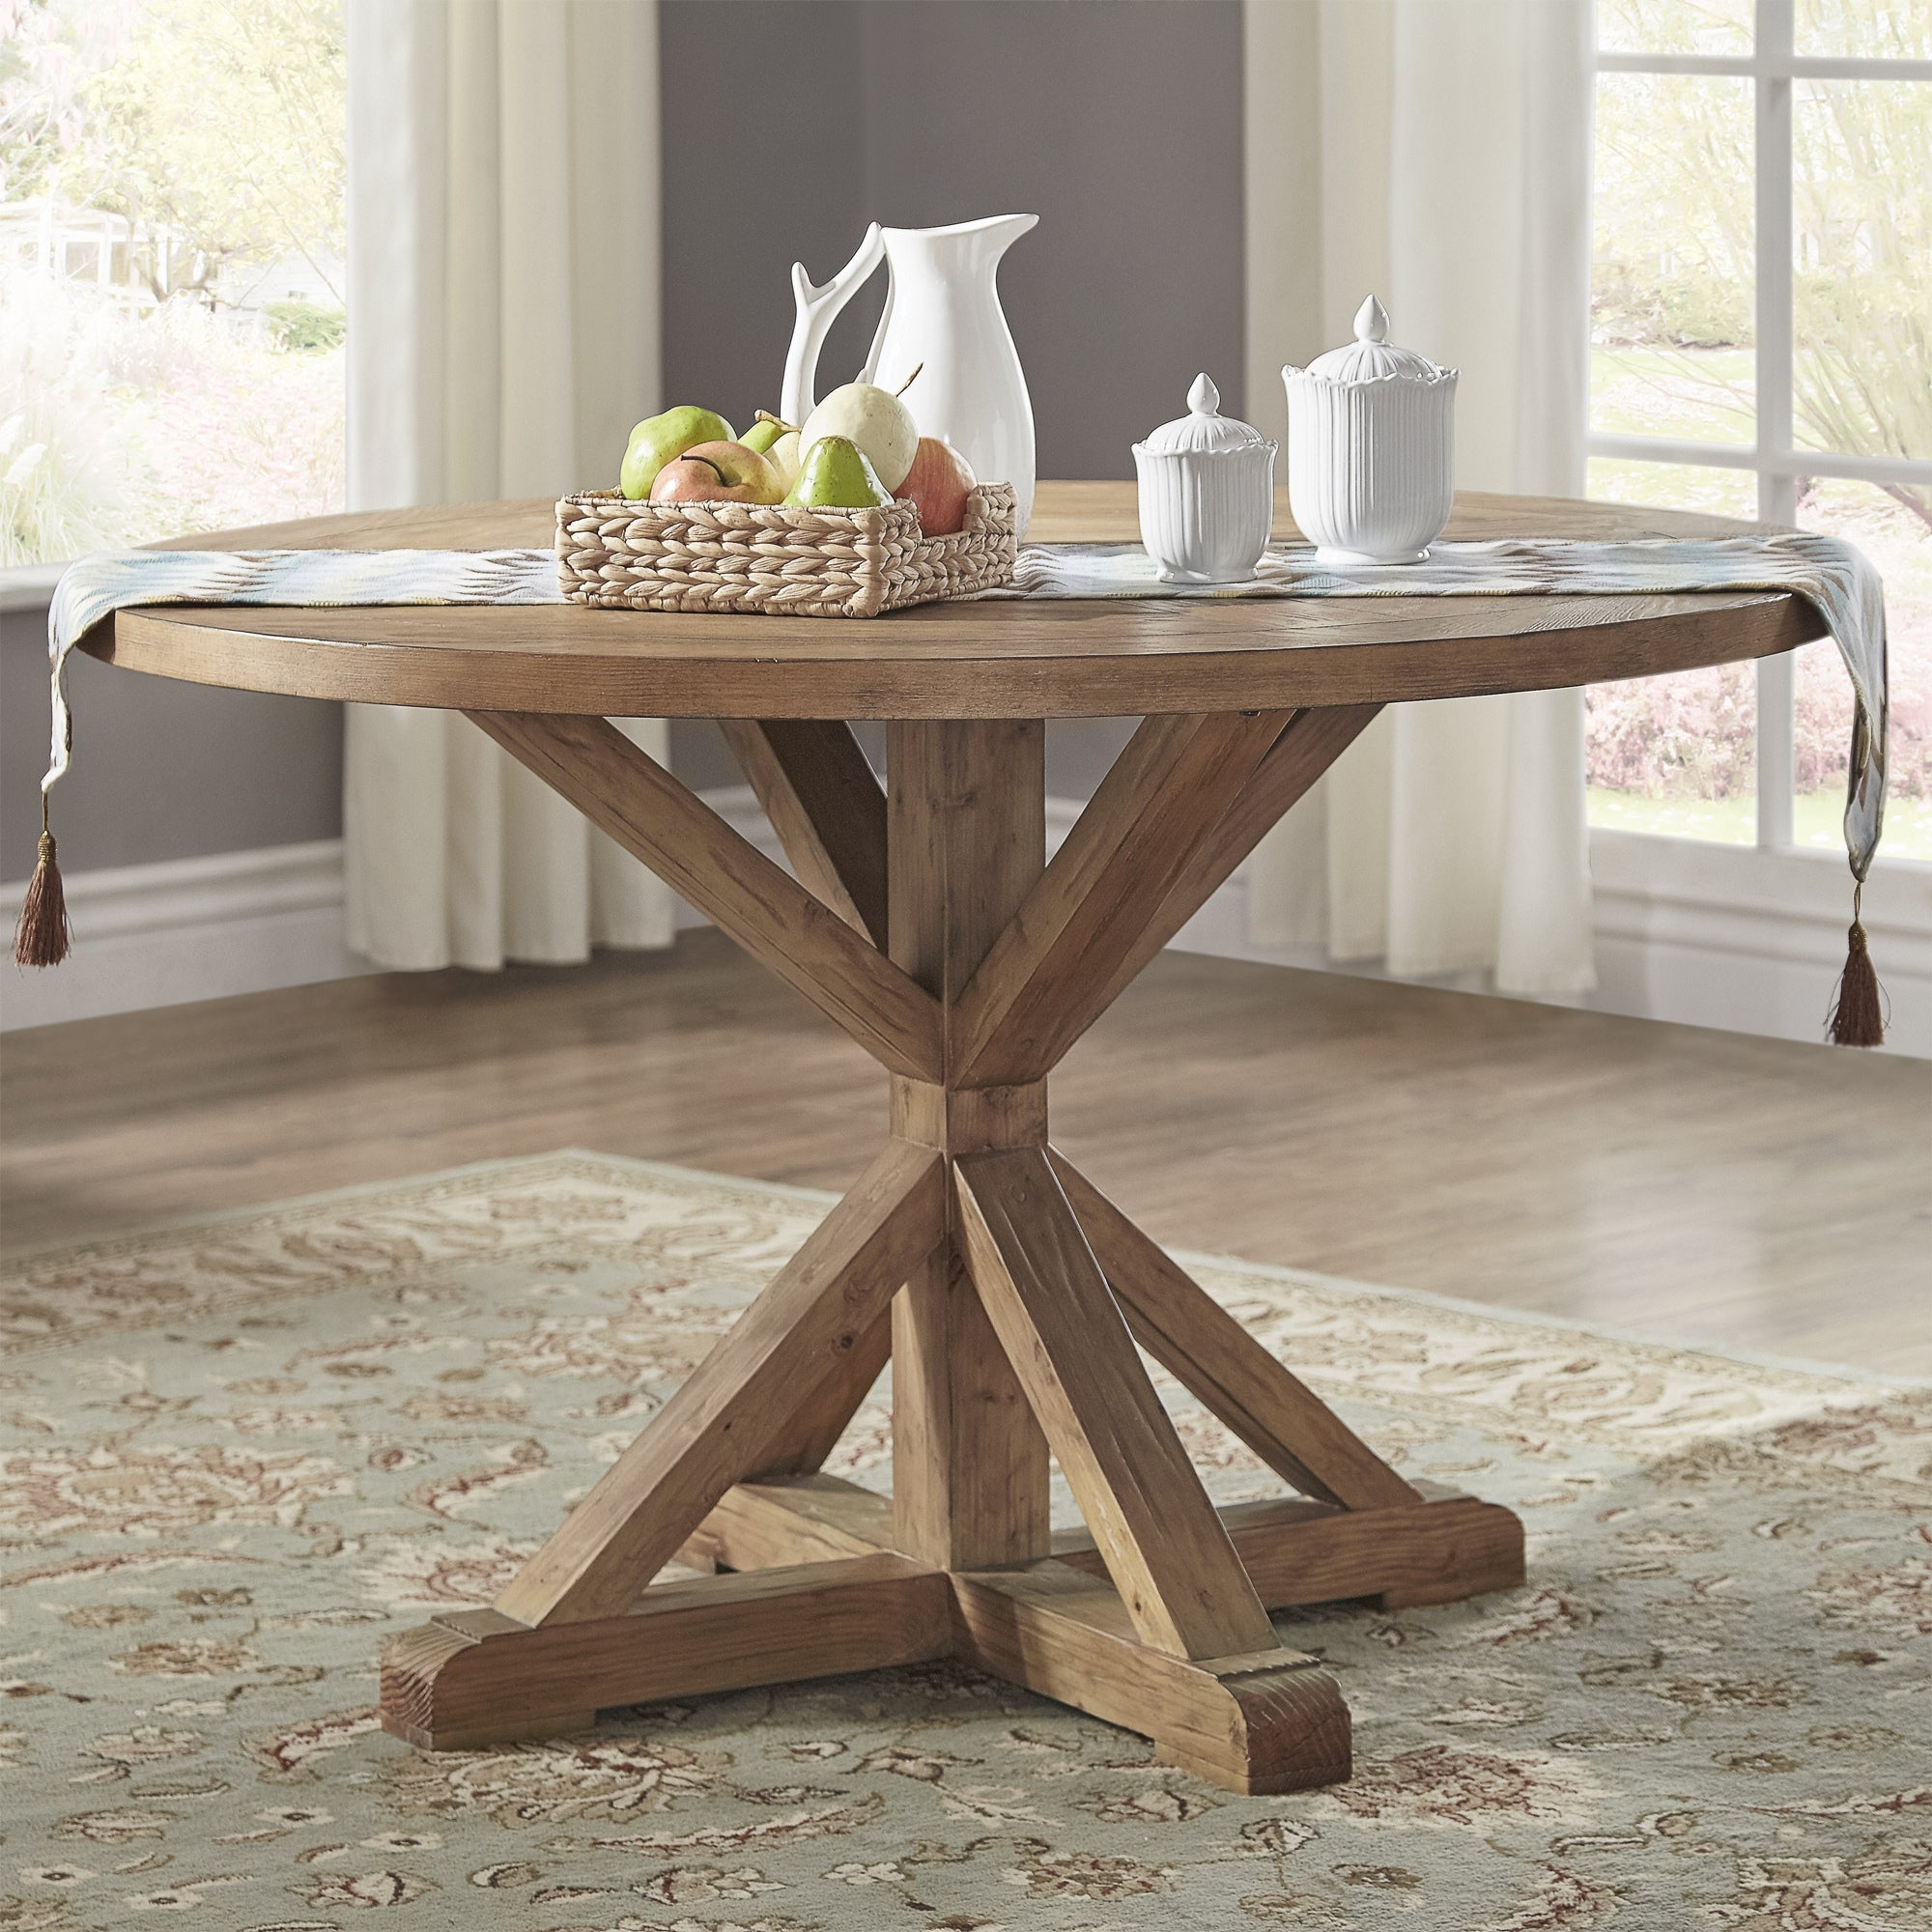 Shop benchwright rustic x base 48 inch round dining table set by inspire q artisan on sale free shipping today overstock com 14357274